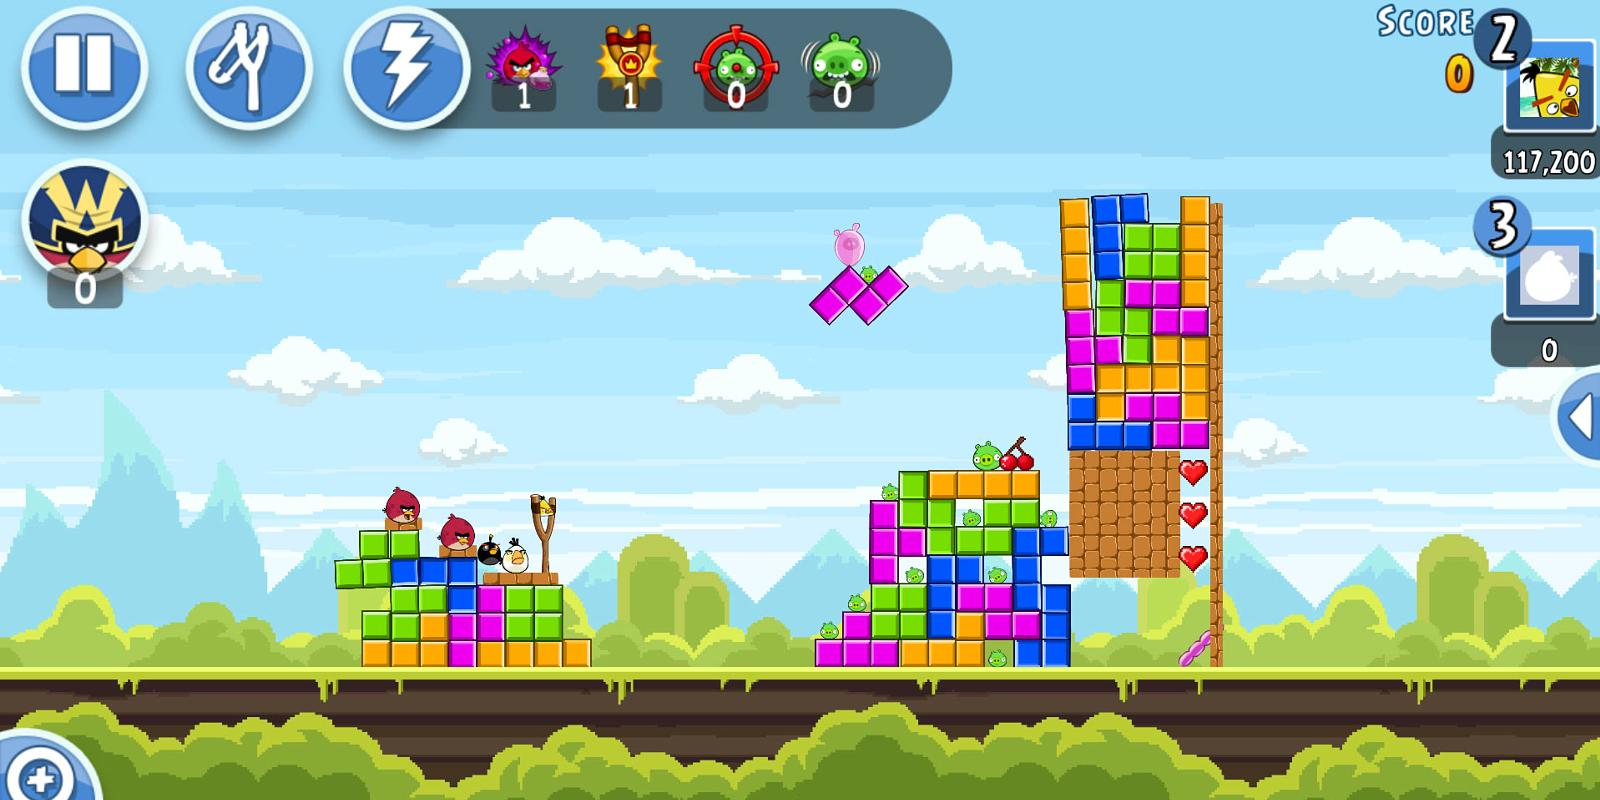 Angry birds levels inspired by retro games tetris super mario angry birds levels inspired by retro games tetris super mario bros more voltagebd Choice Image